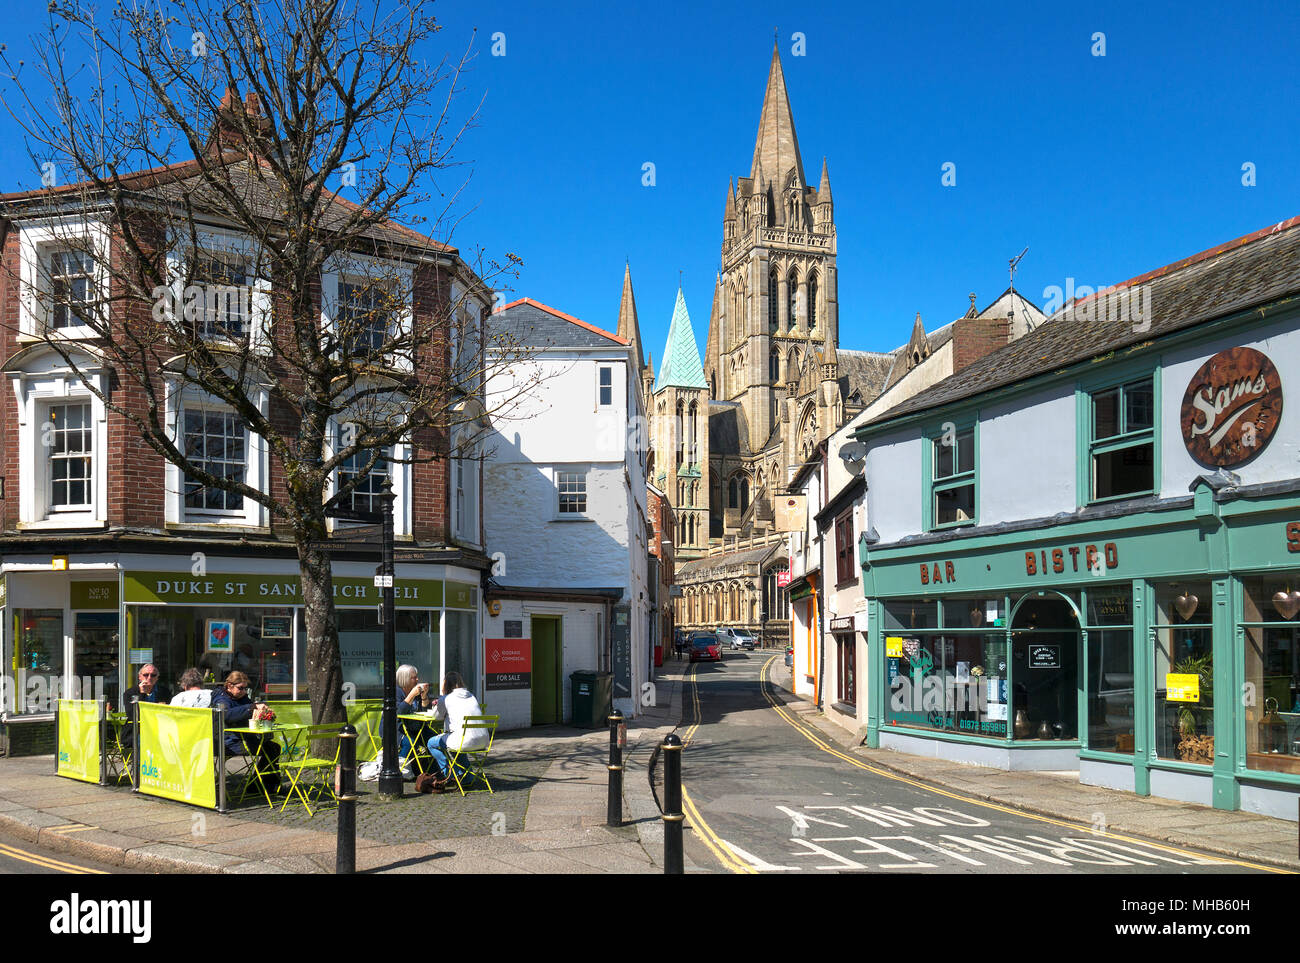 the cathedral city of truro in cornwall, england, britain, uk. - Stock Image